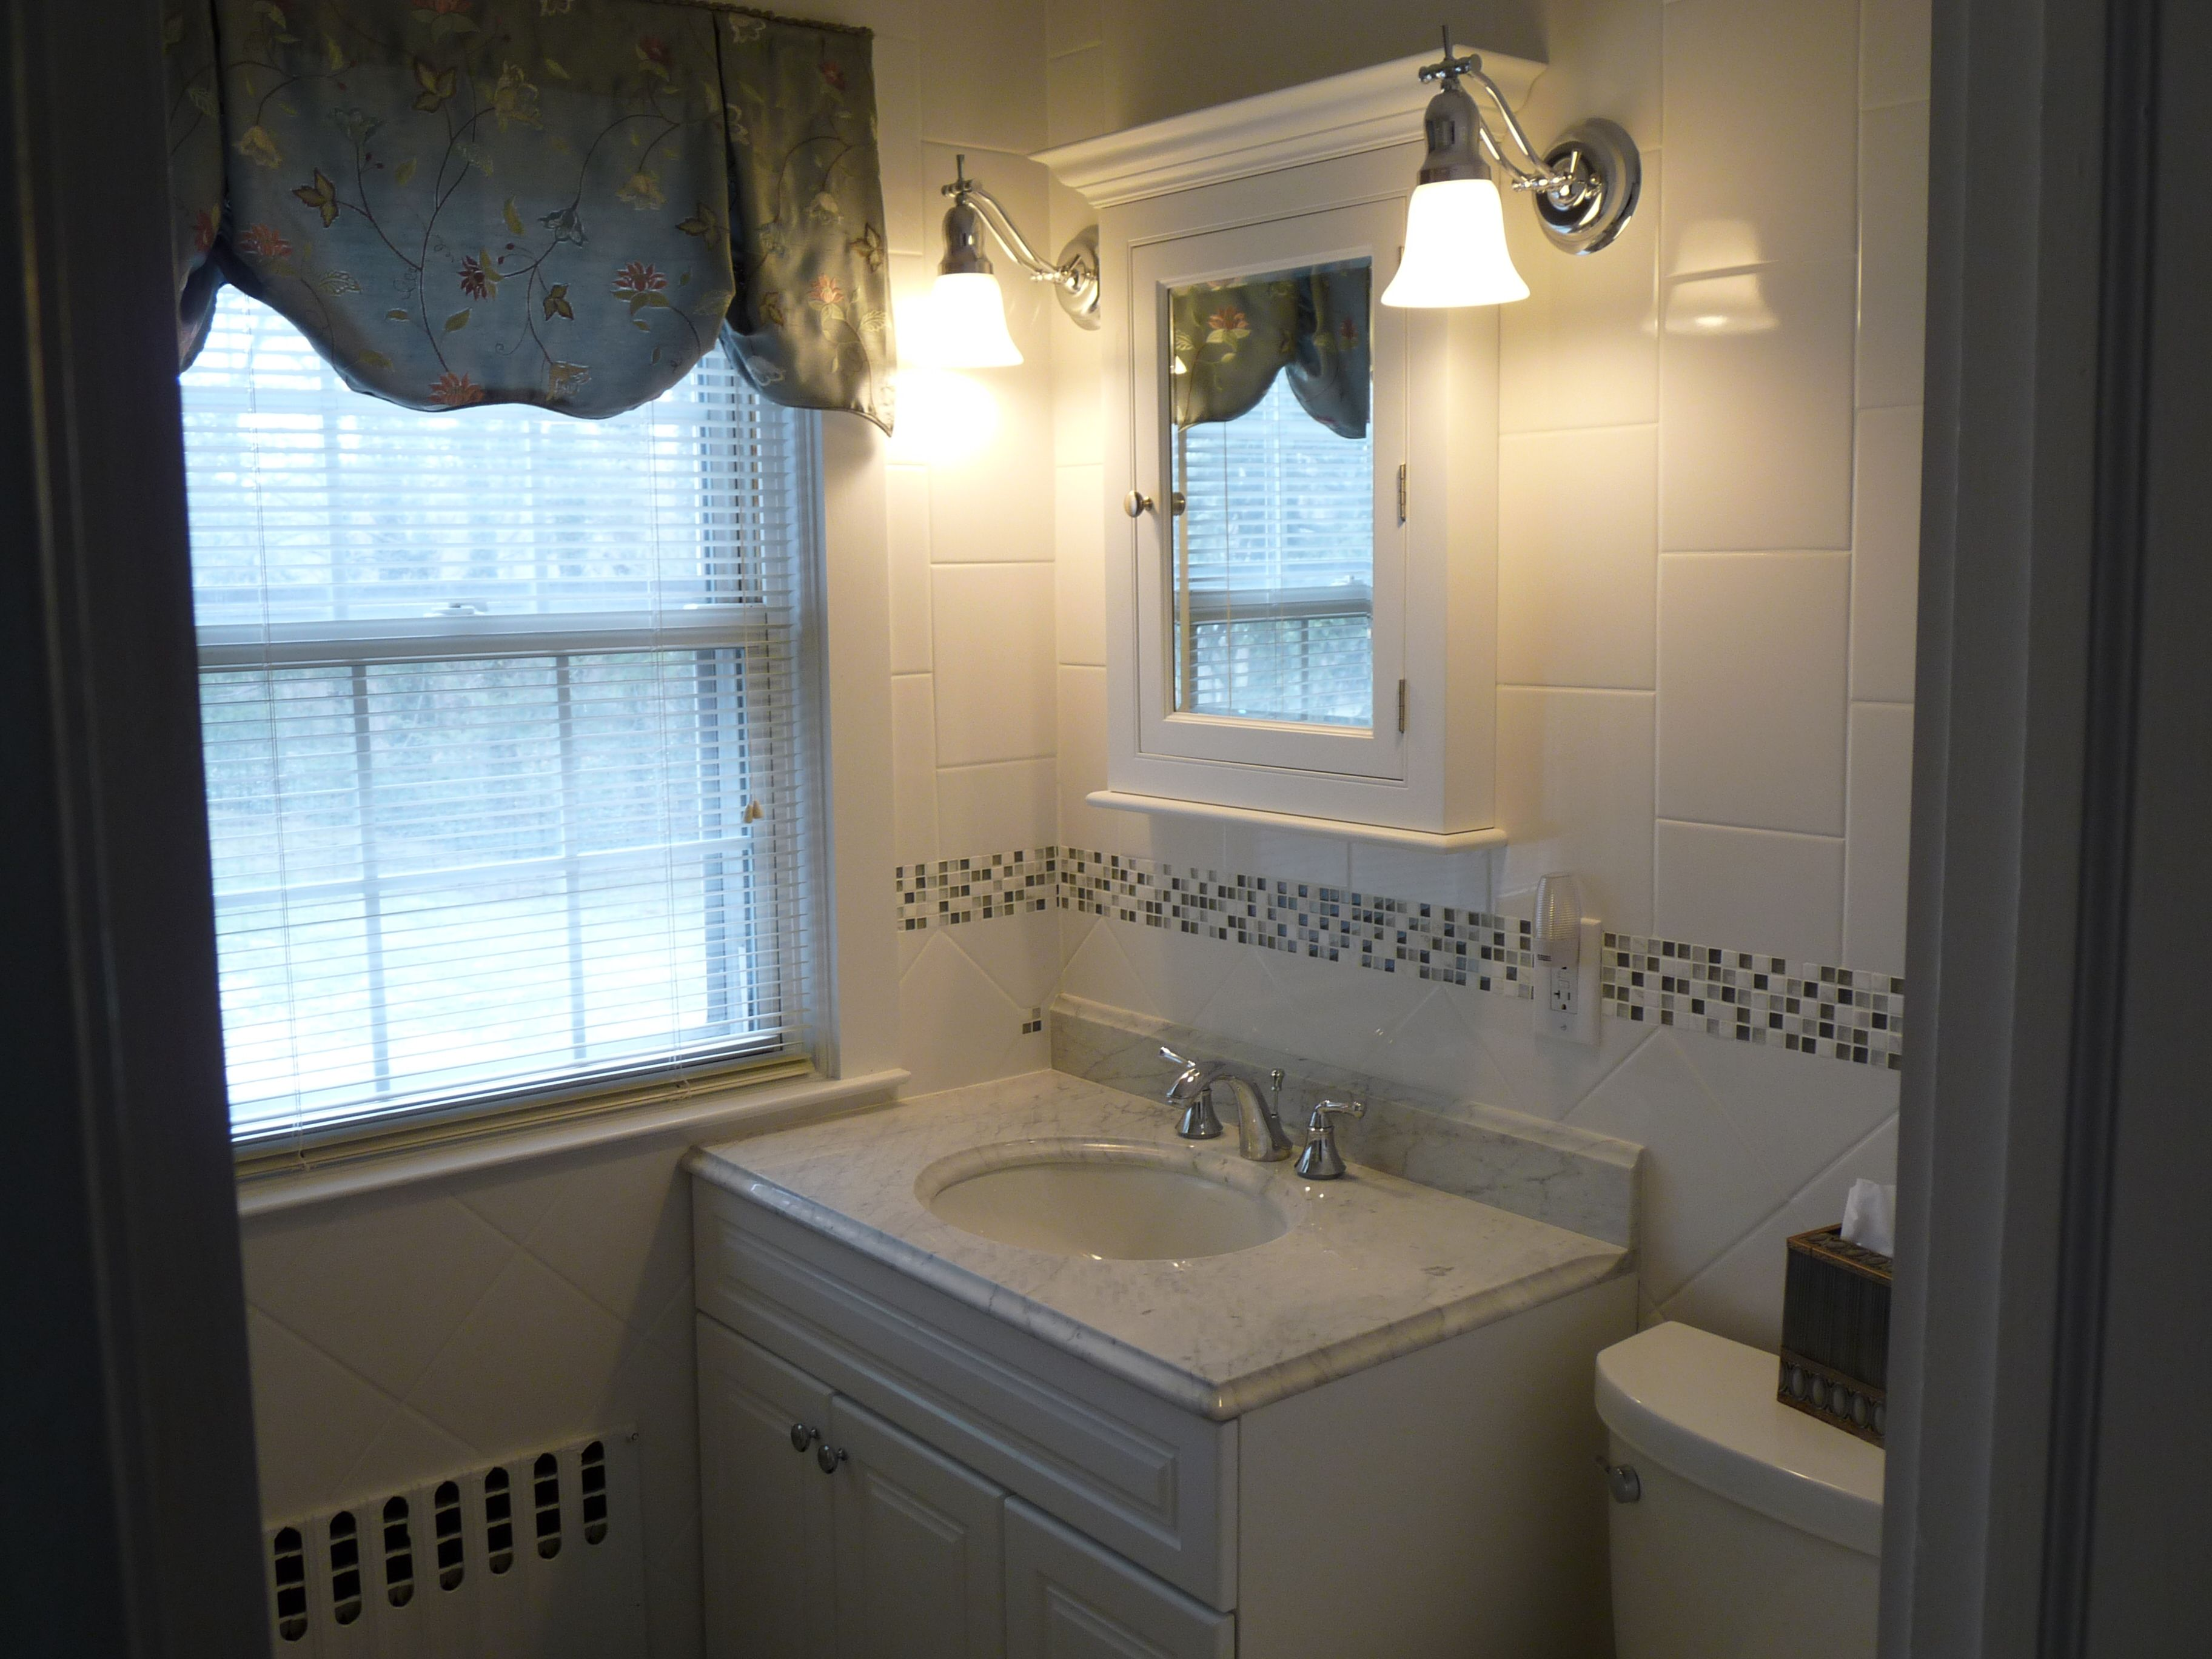 Bathroom Vanity With Sconce Lightinghttpwww Interesting Bathroom Remodeling Service Decorating Design